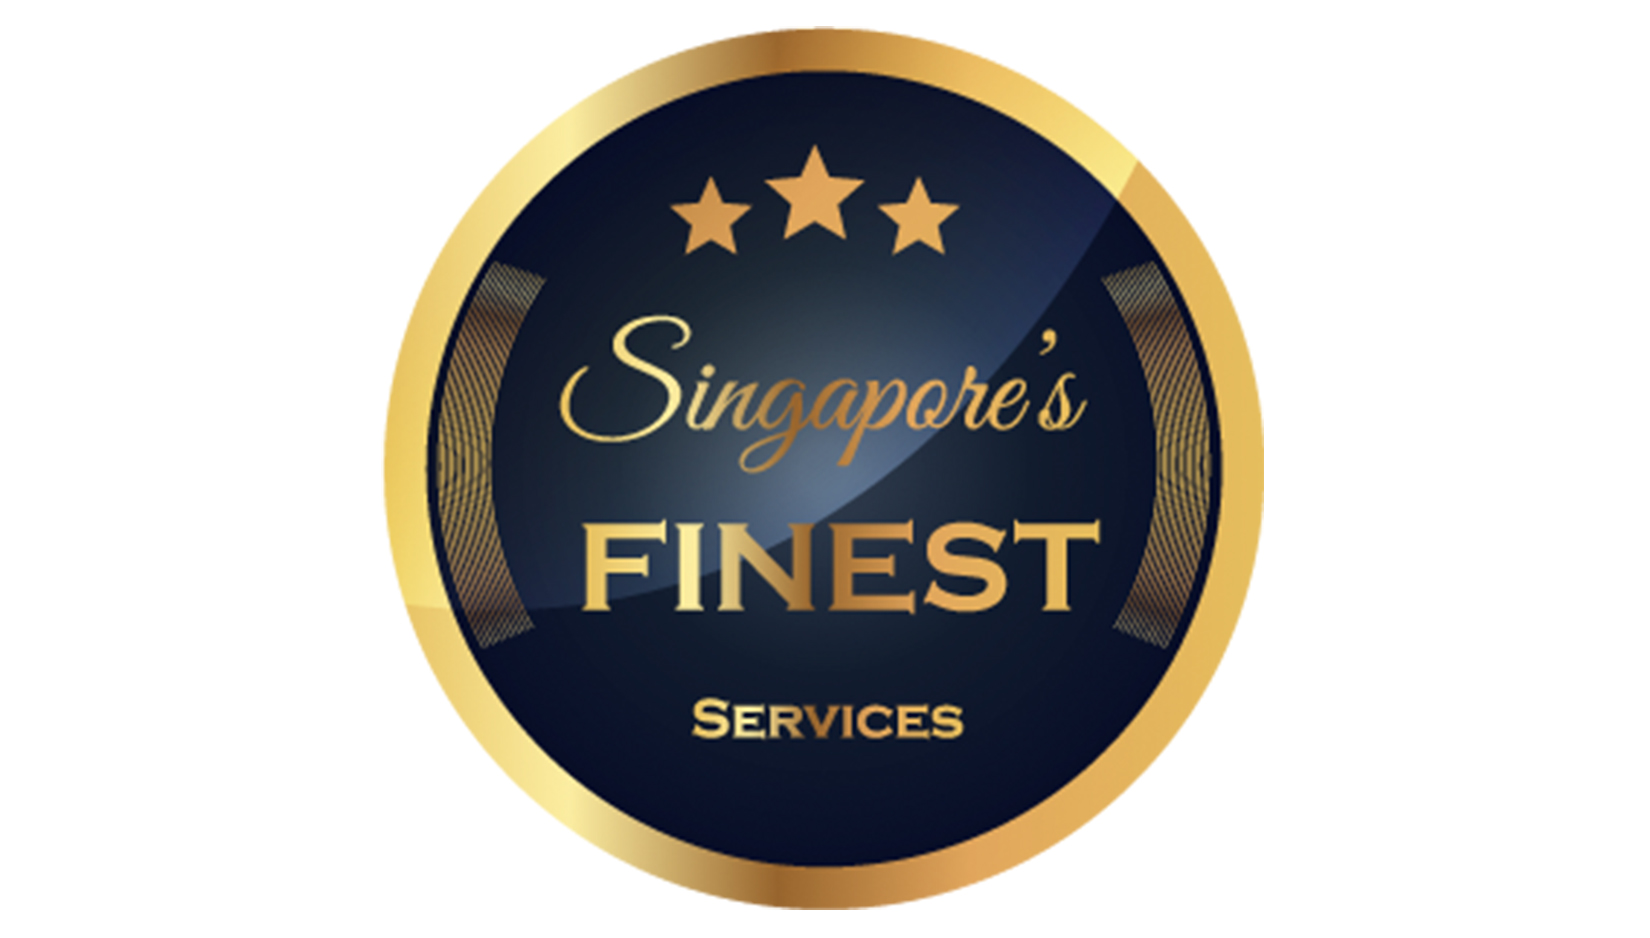 Finest Printing Services in Singapore